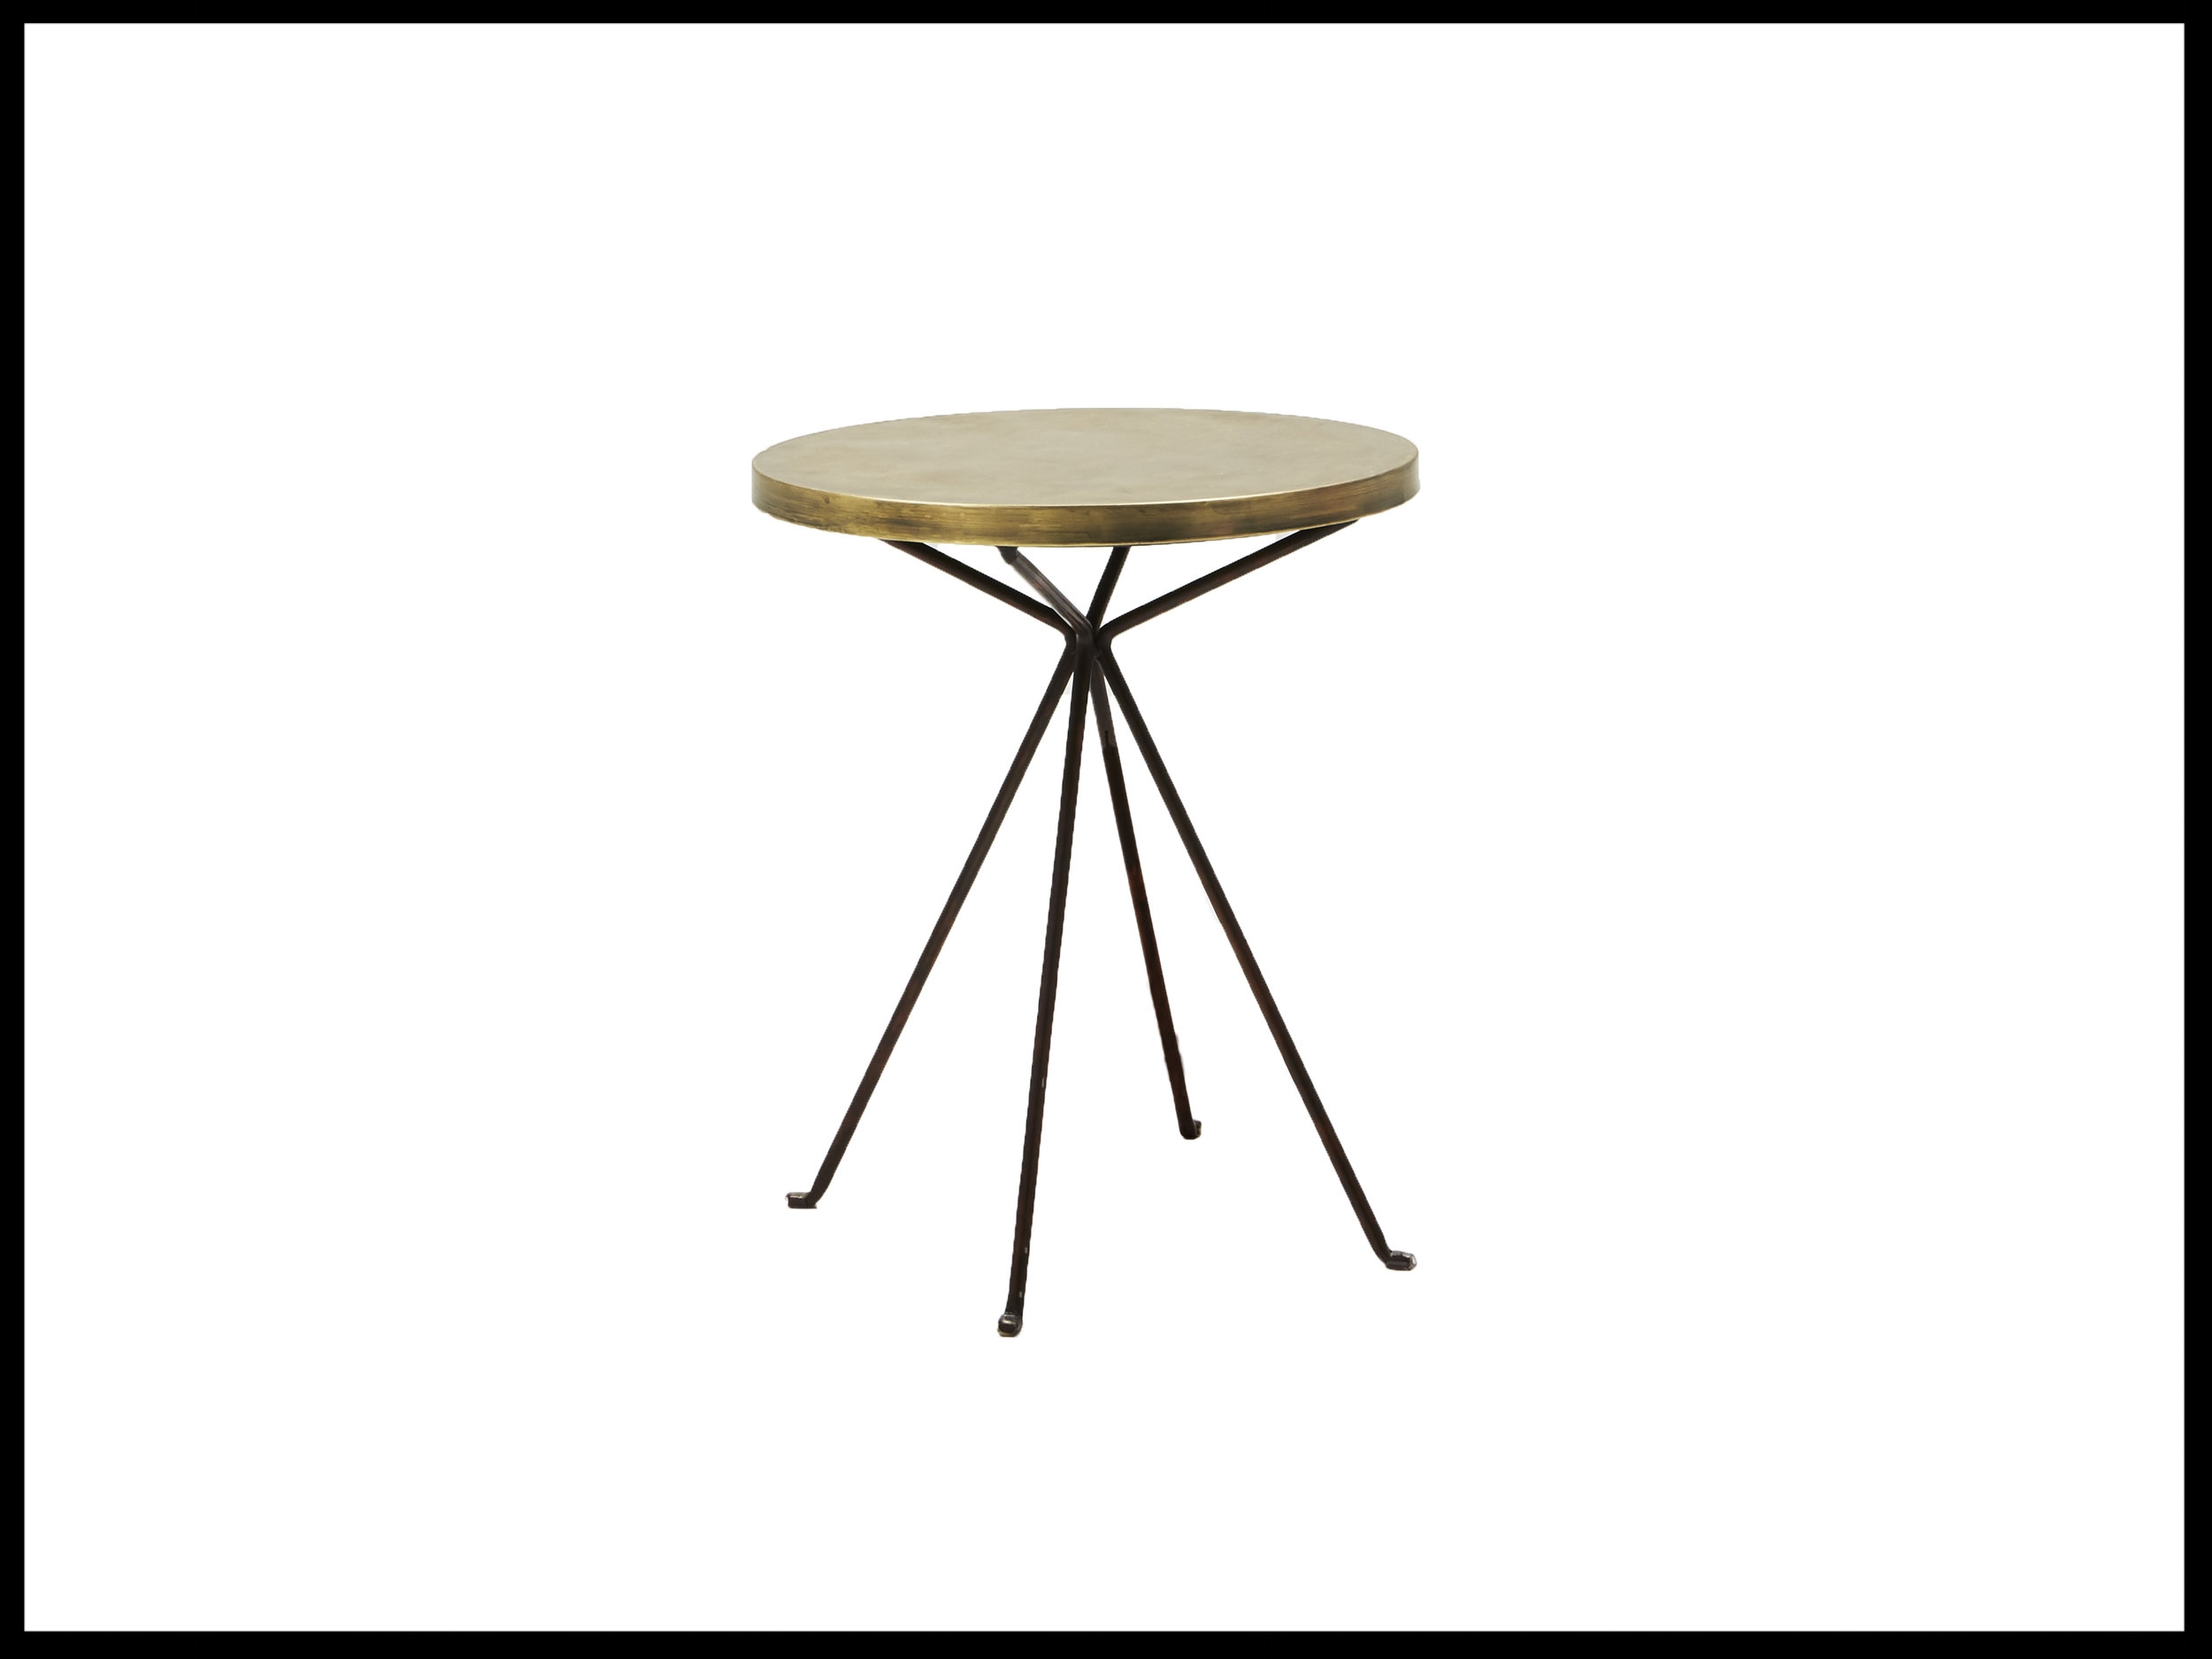 Loaf - NEW Quid side table £125 high res cut out 1.jpg